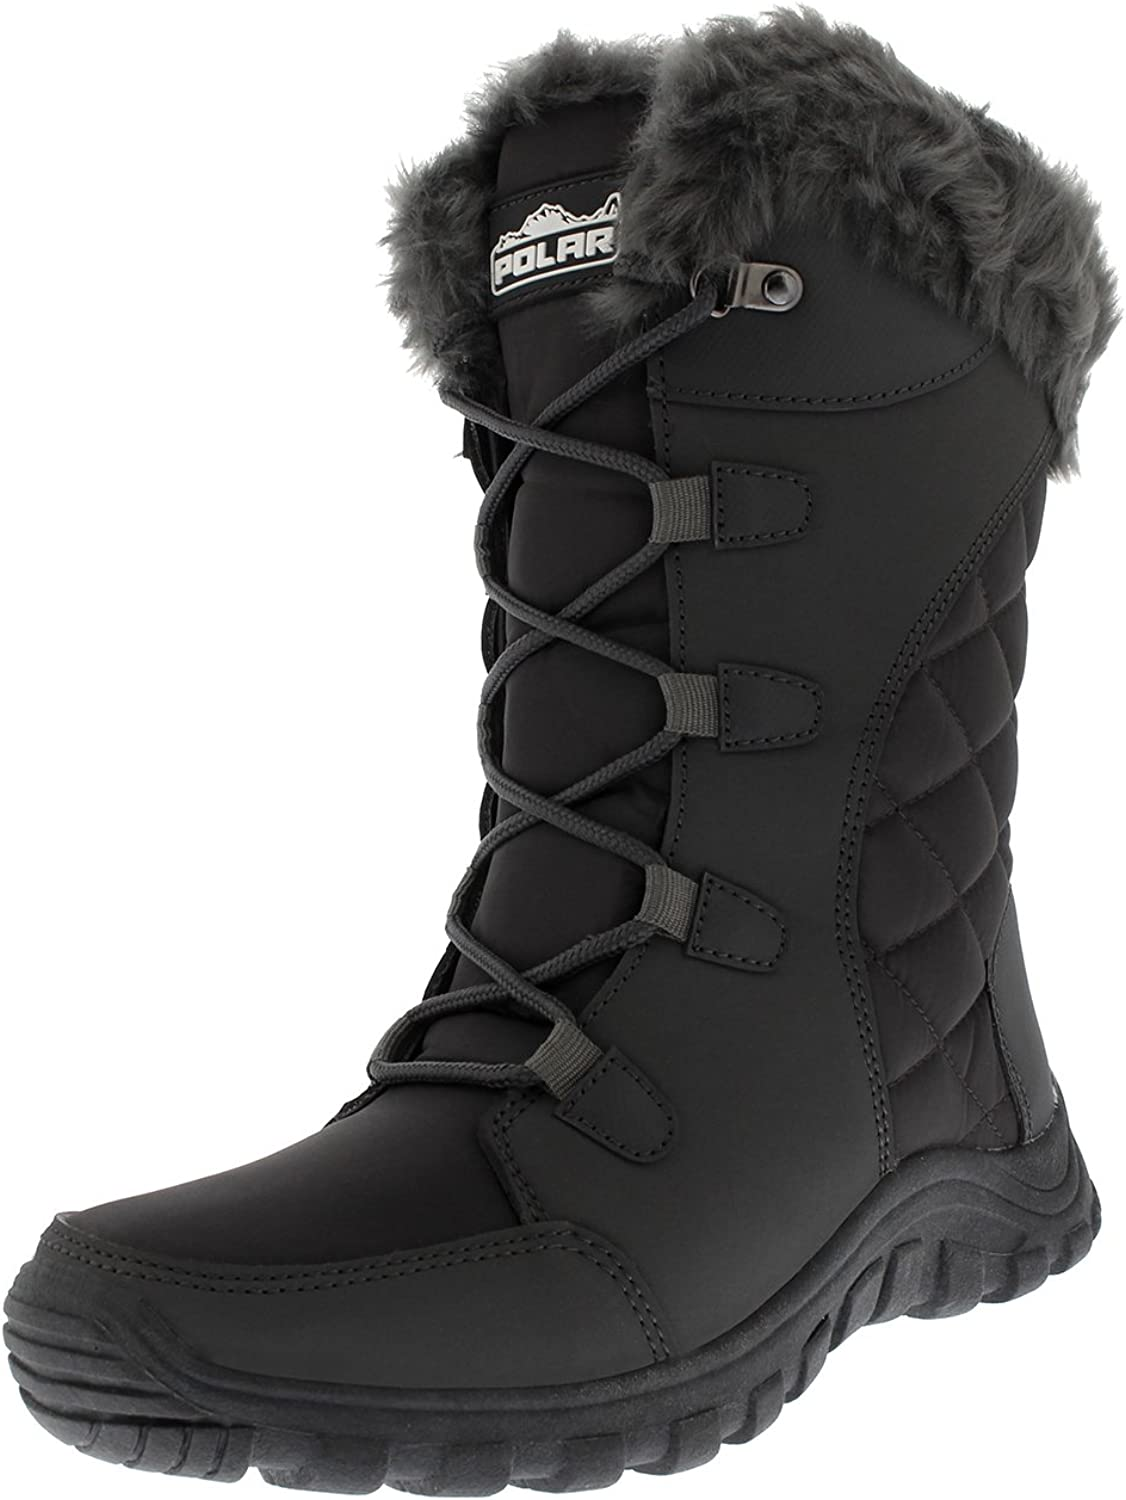 Polar Products Womens Quilted Lace Up Grey Outdoor Snow Rain Duck Boot